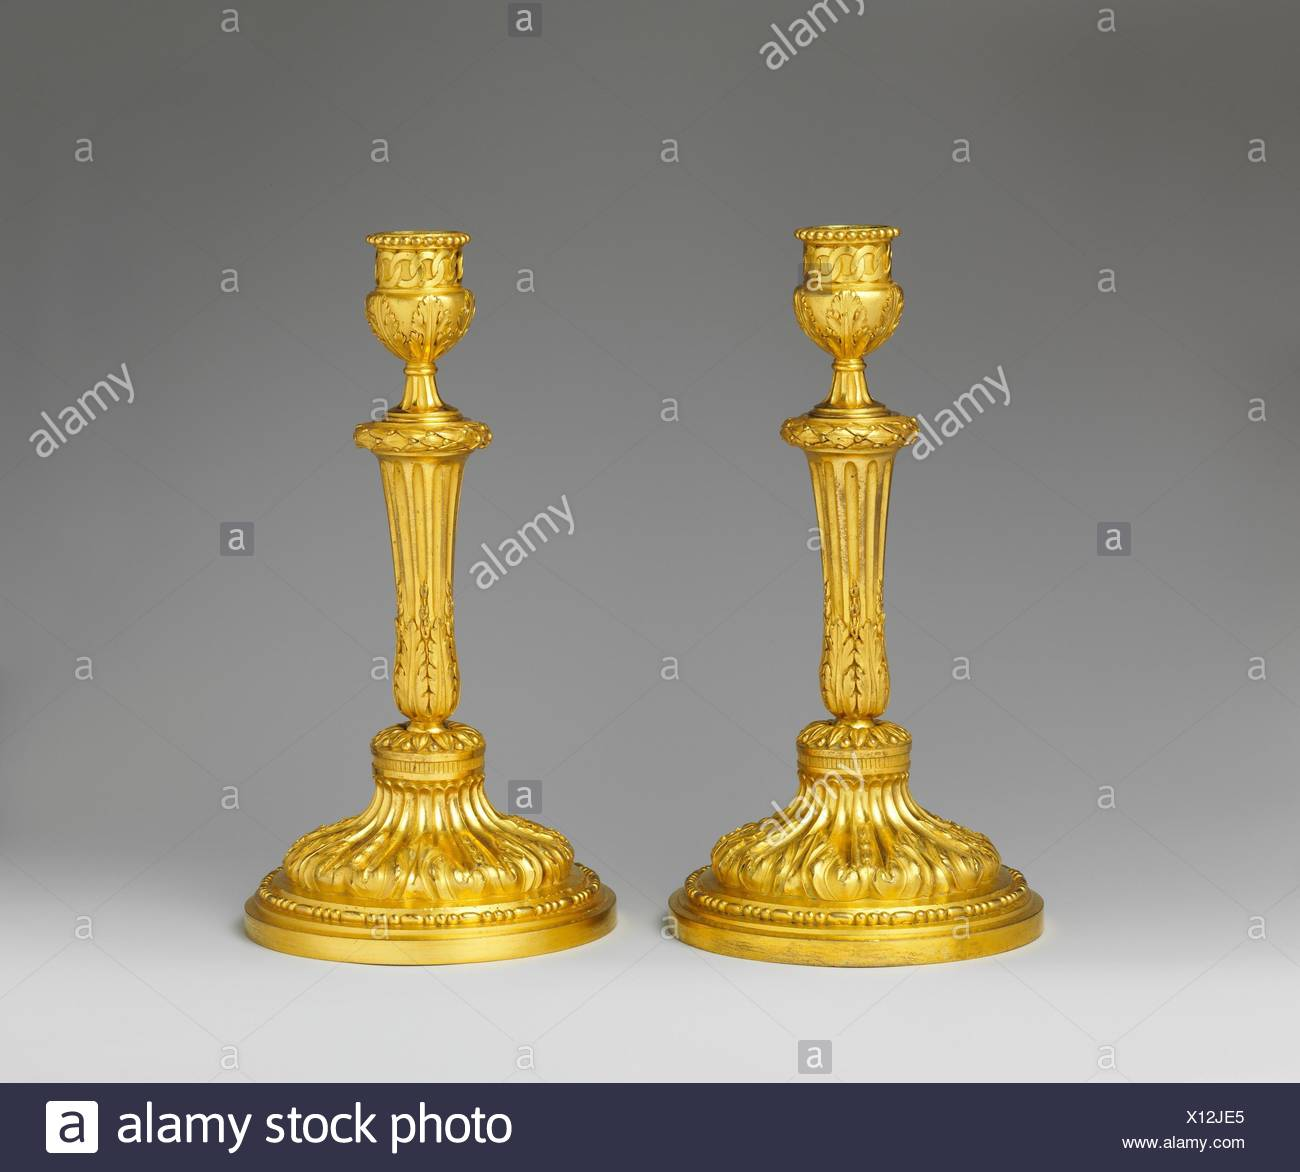 Pair of candlesticks. Date: ca. 1770-75; Culture: French; Medium: Gilt bronze; Dimensions: Overall (confirmed): 10 1/2 x 5 5/8 in. (26.7 x 14.3 cm); Stock Photo